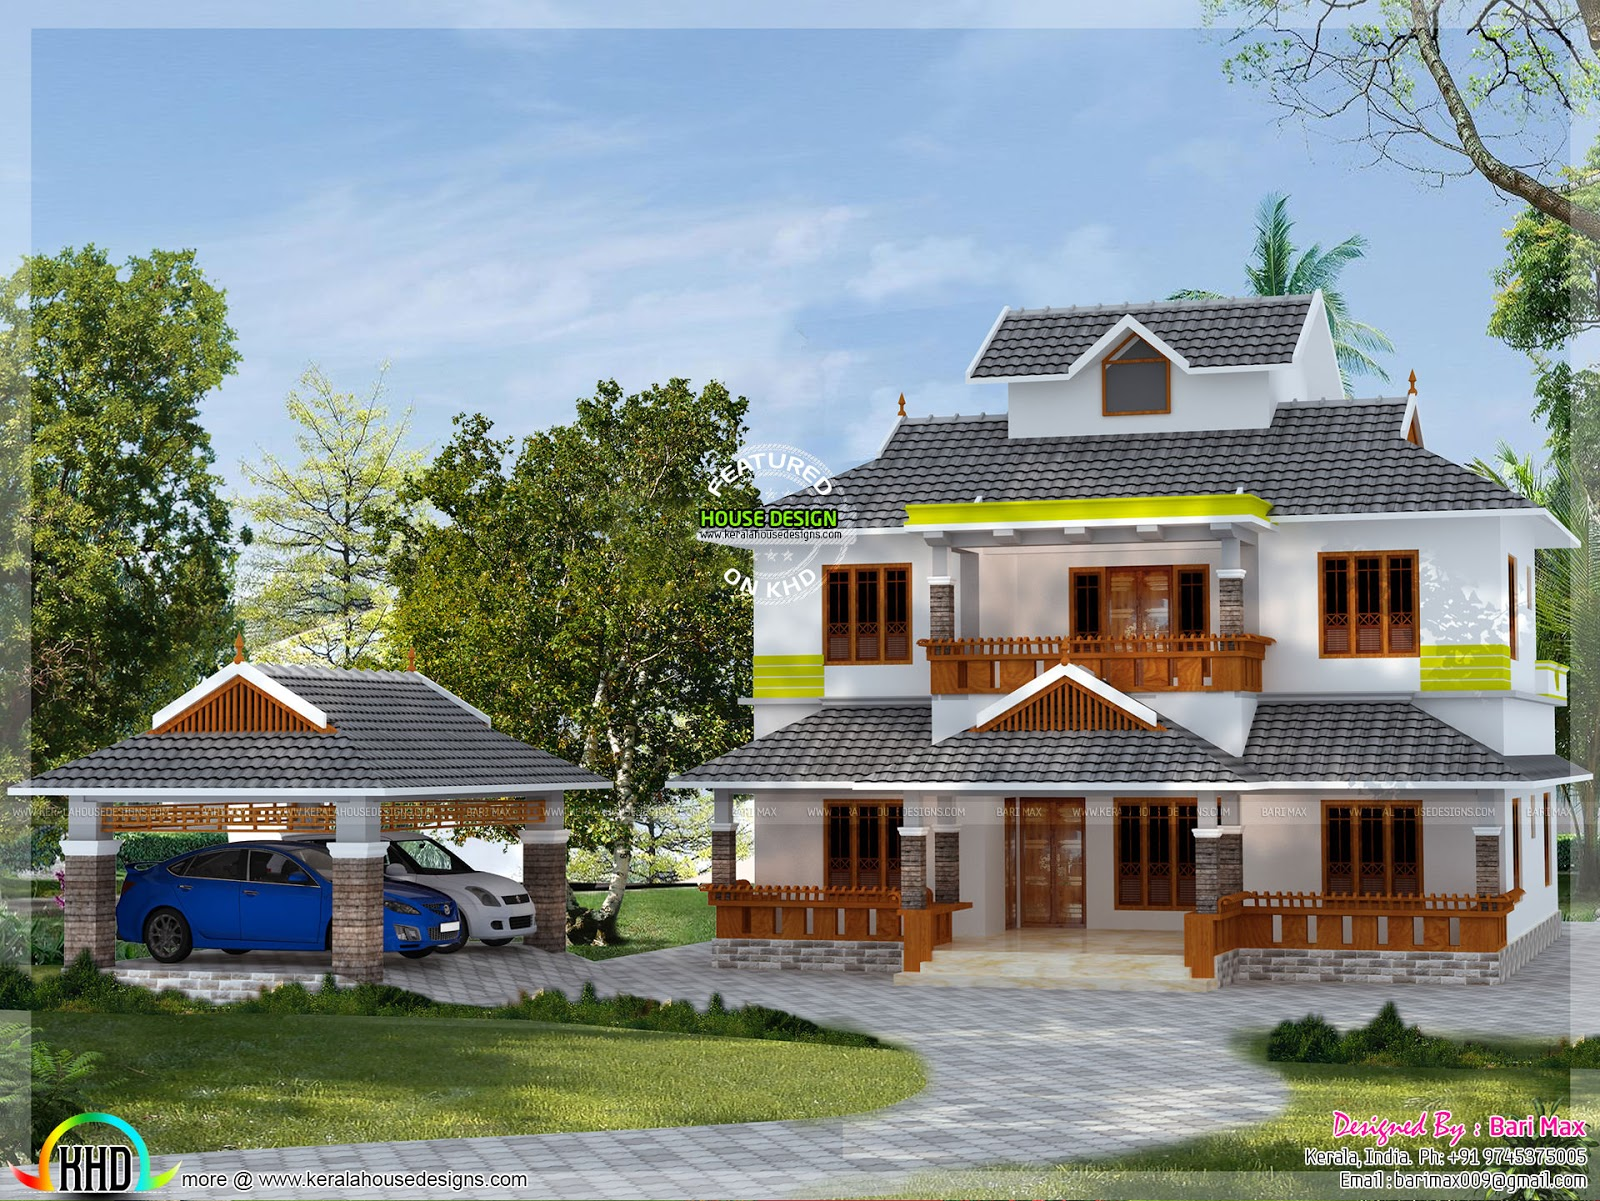 2500 sq ft slop roof home kerala home design and floor plans for 2500 sq ft home